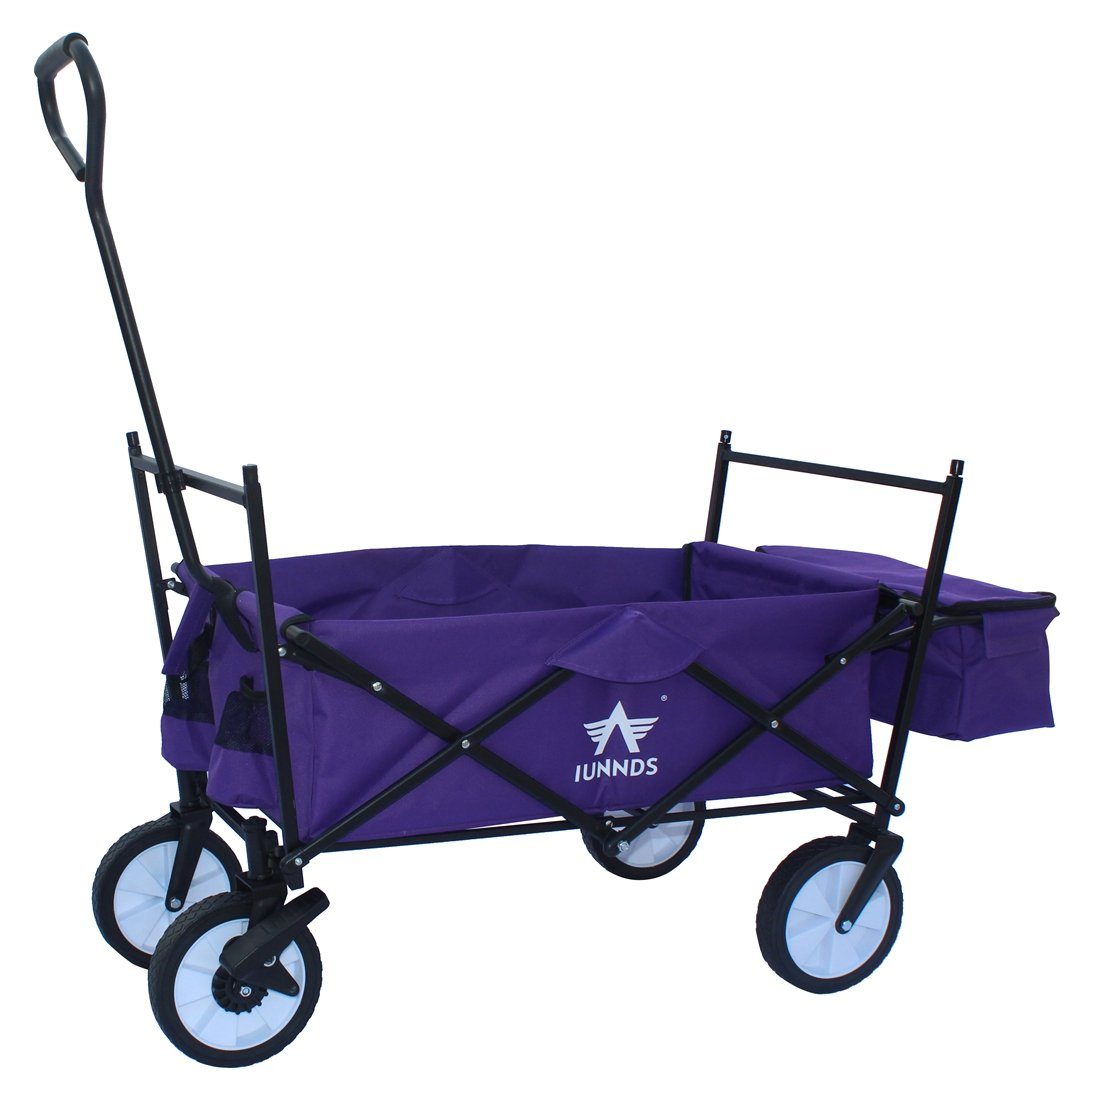 Sports God Folding Wagon Collapsible Utility Graden Cart with Removable Canopy + Storage Basket + FREE Cooler (Purple) by Sports God (Image #3)